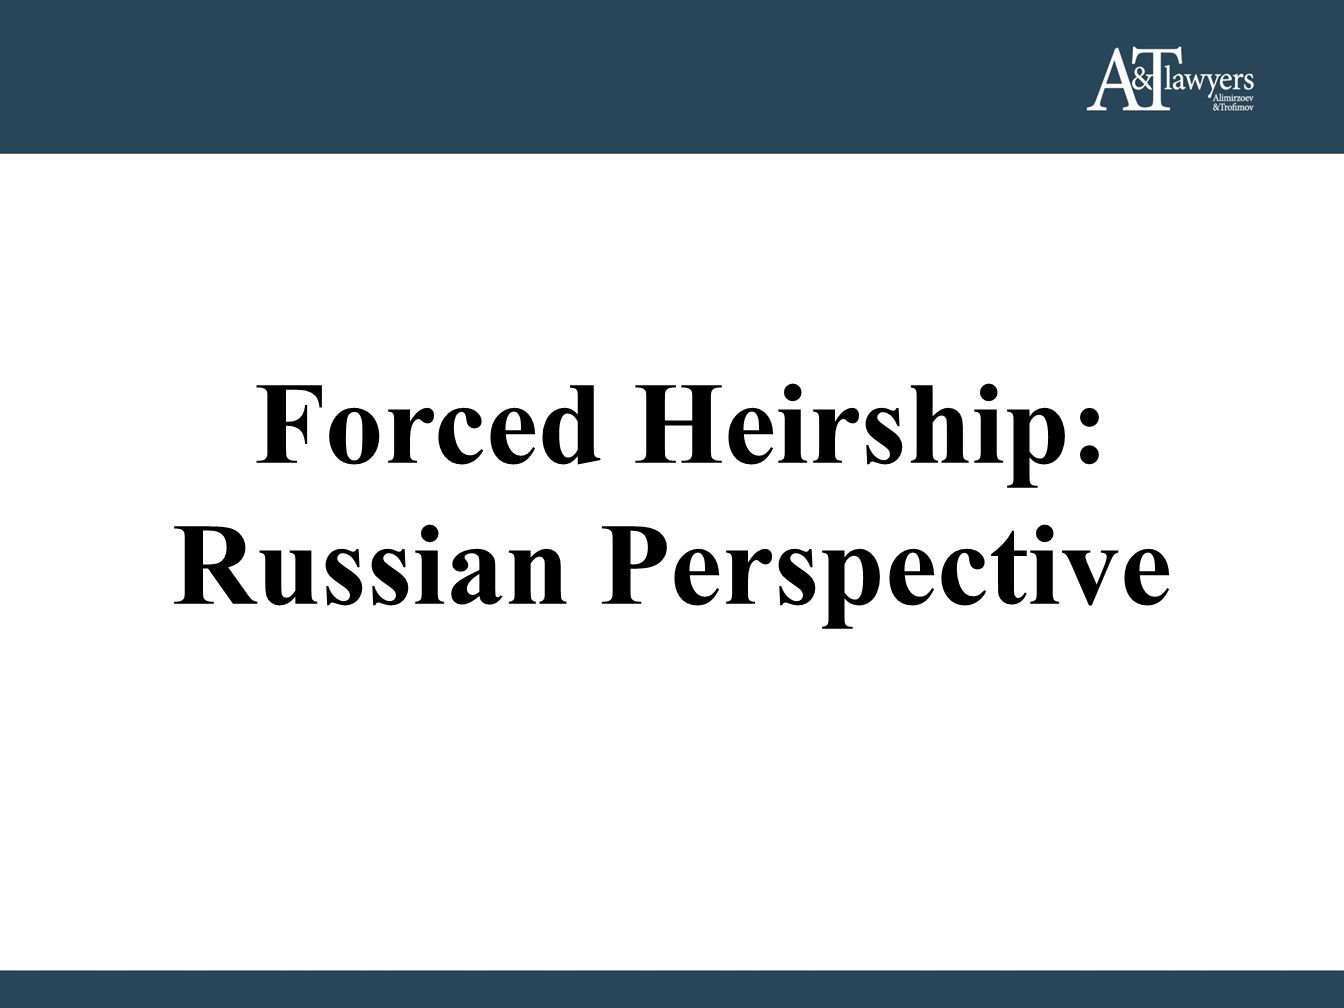 Forced Heirship: Russian Perspective